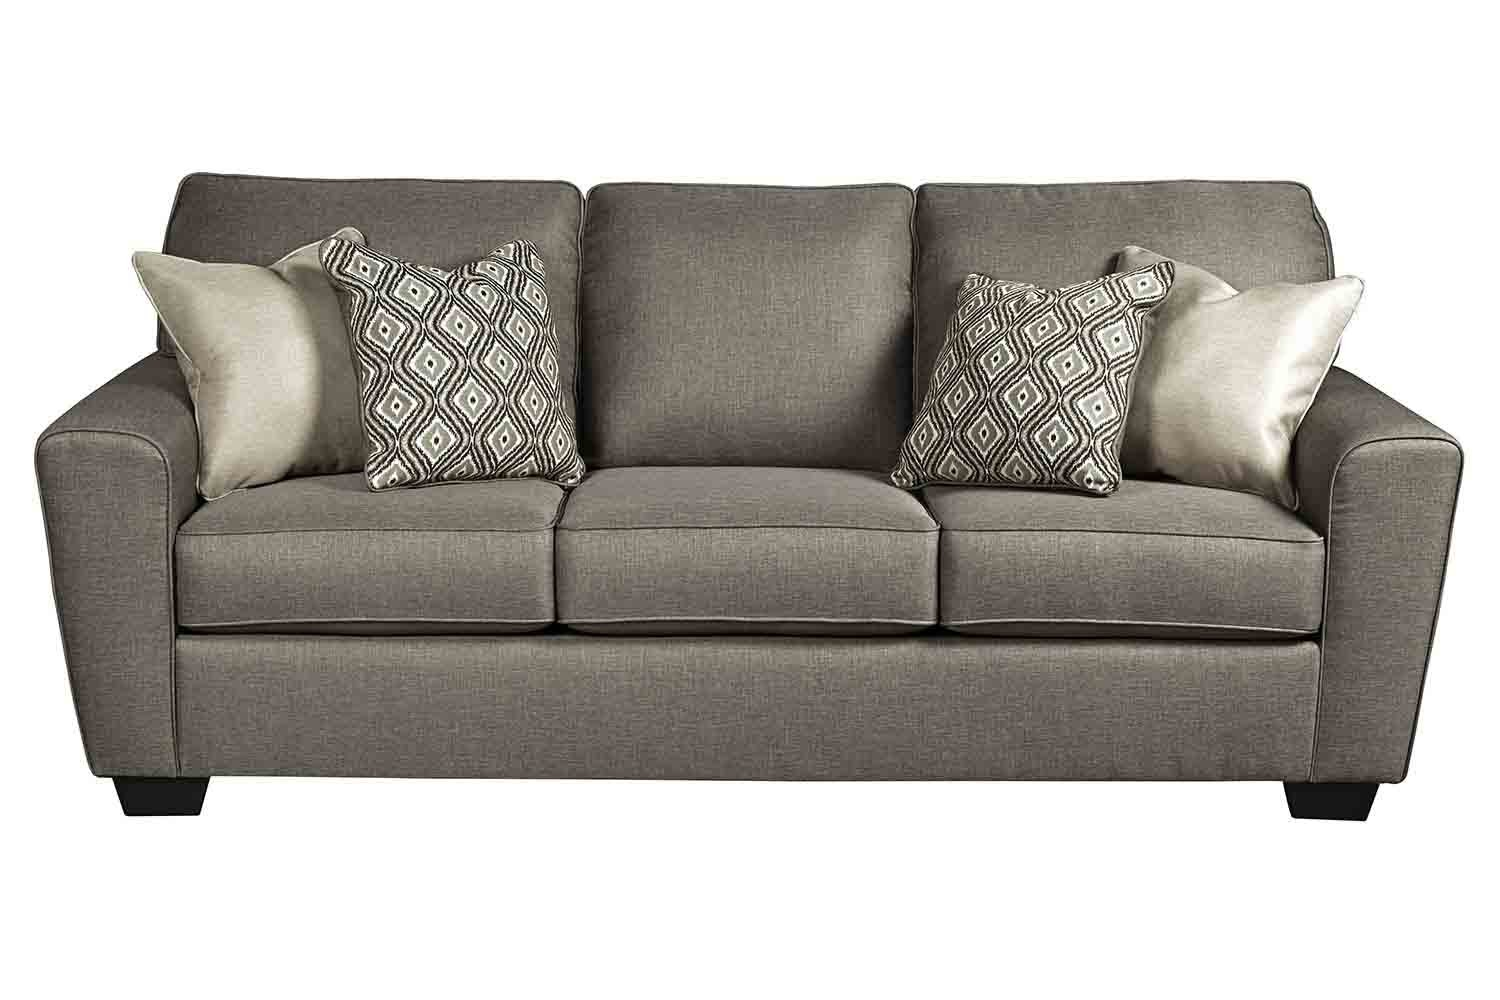 Couch Sofa Sofas Couches Mor Furniture For Less